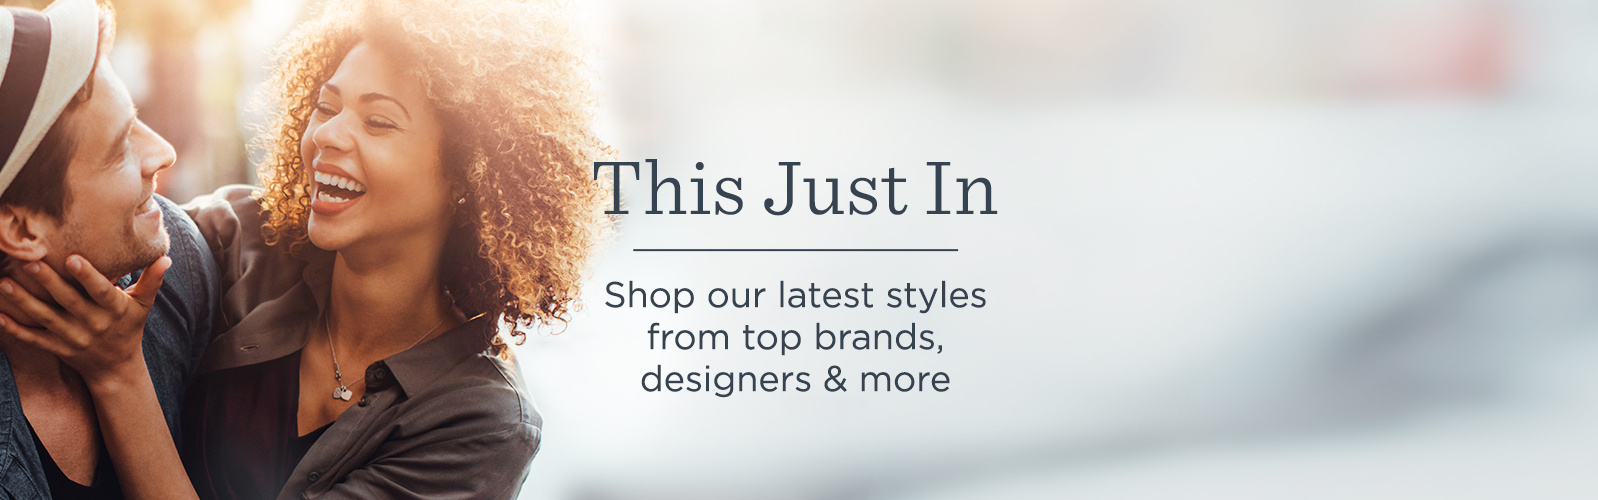 This Just In.  Shop our latest styles from top brands, designers & more